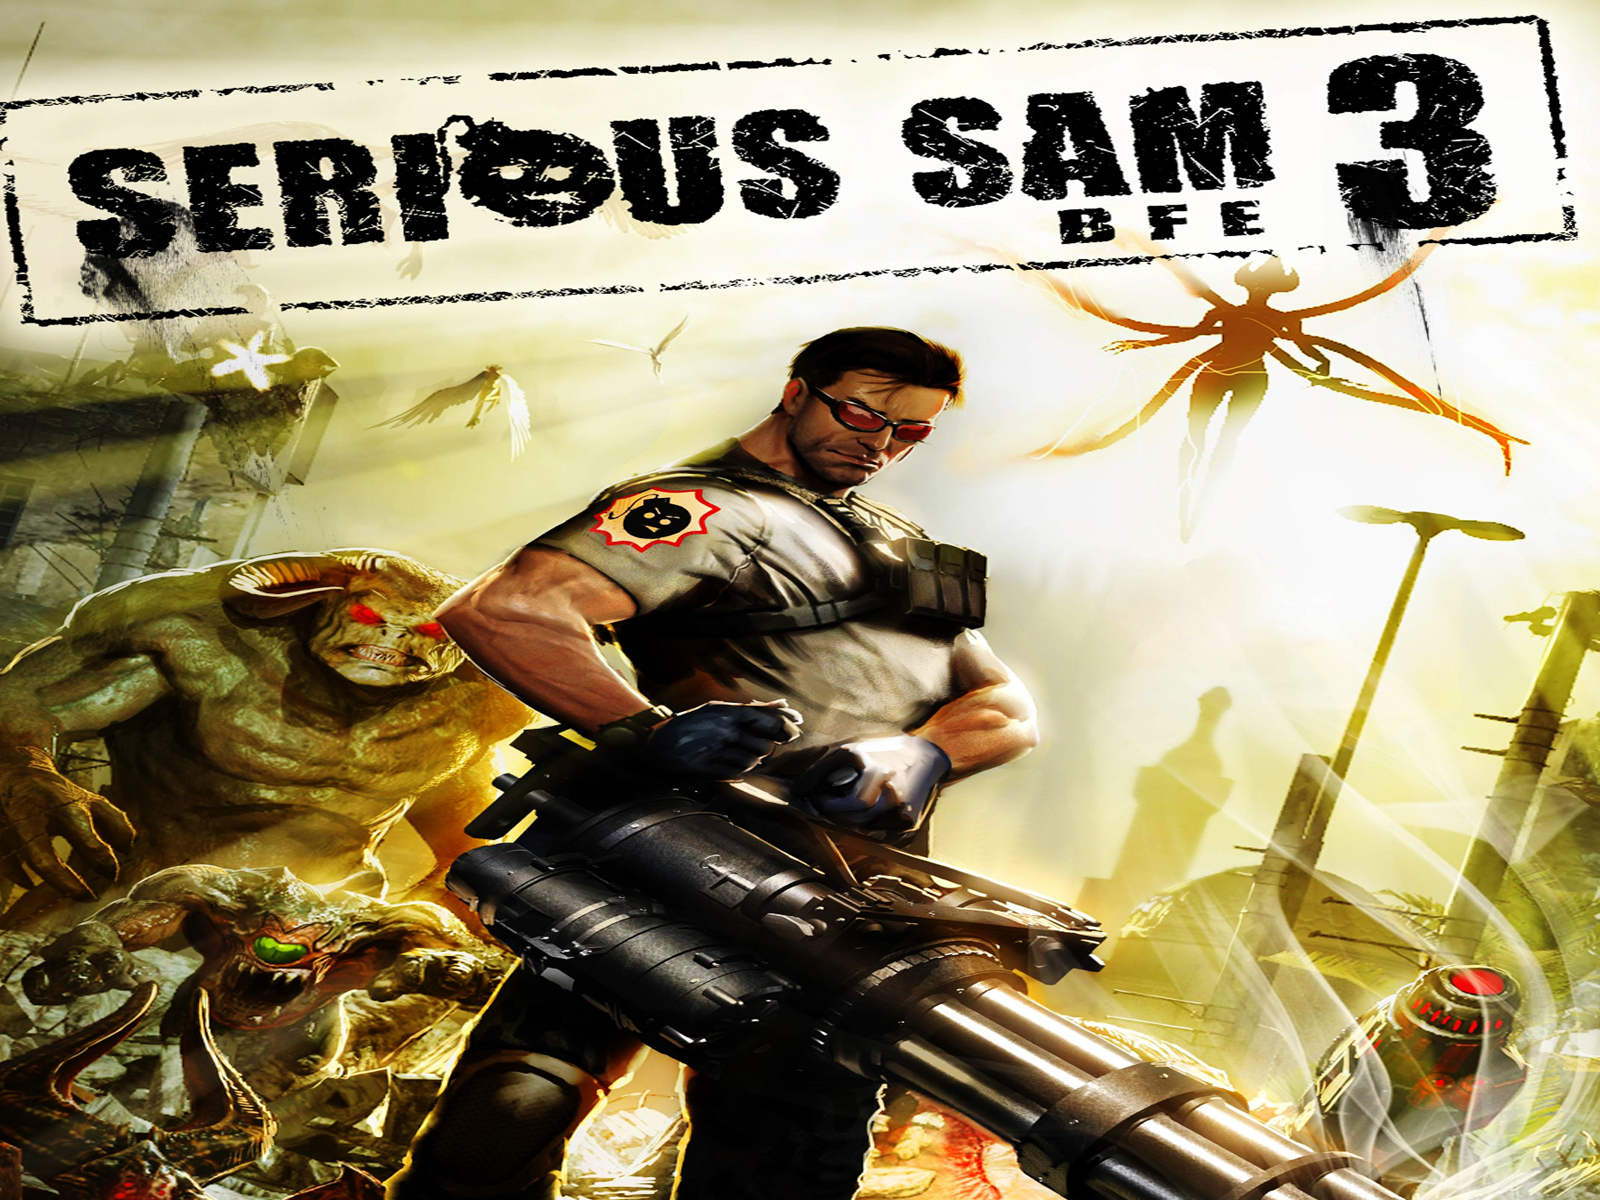 Serious Sam 3 Bfe Hd Wallpapers Hd Wallpapers